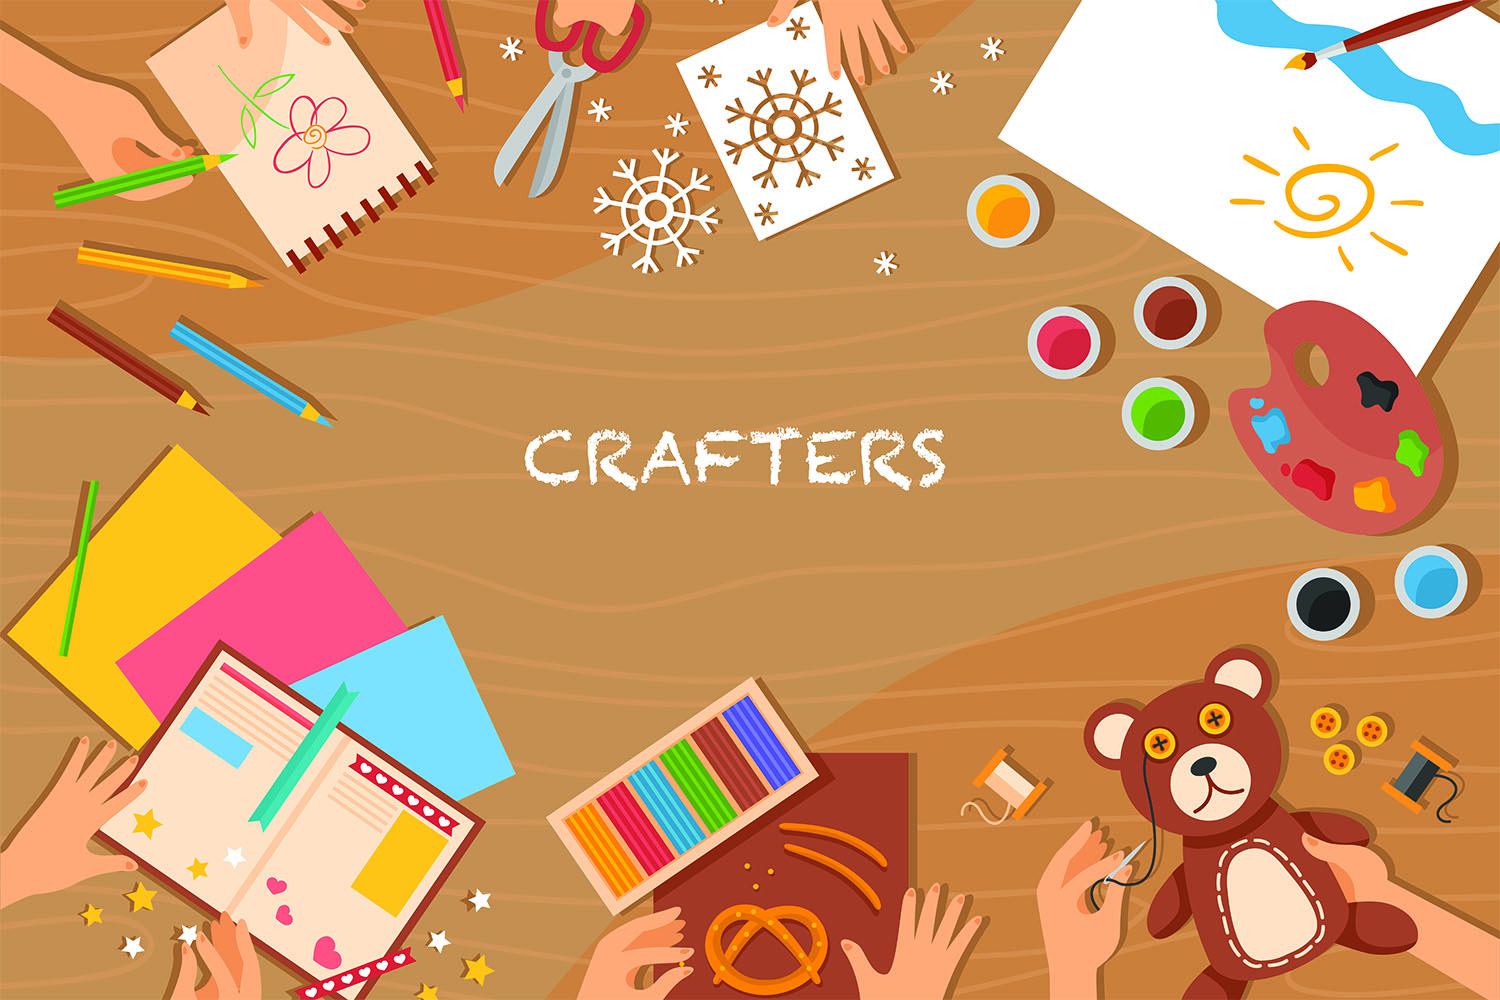 Crafters – COVID-19 Resources